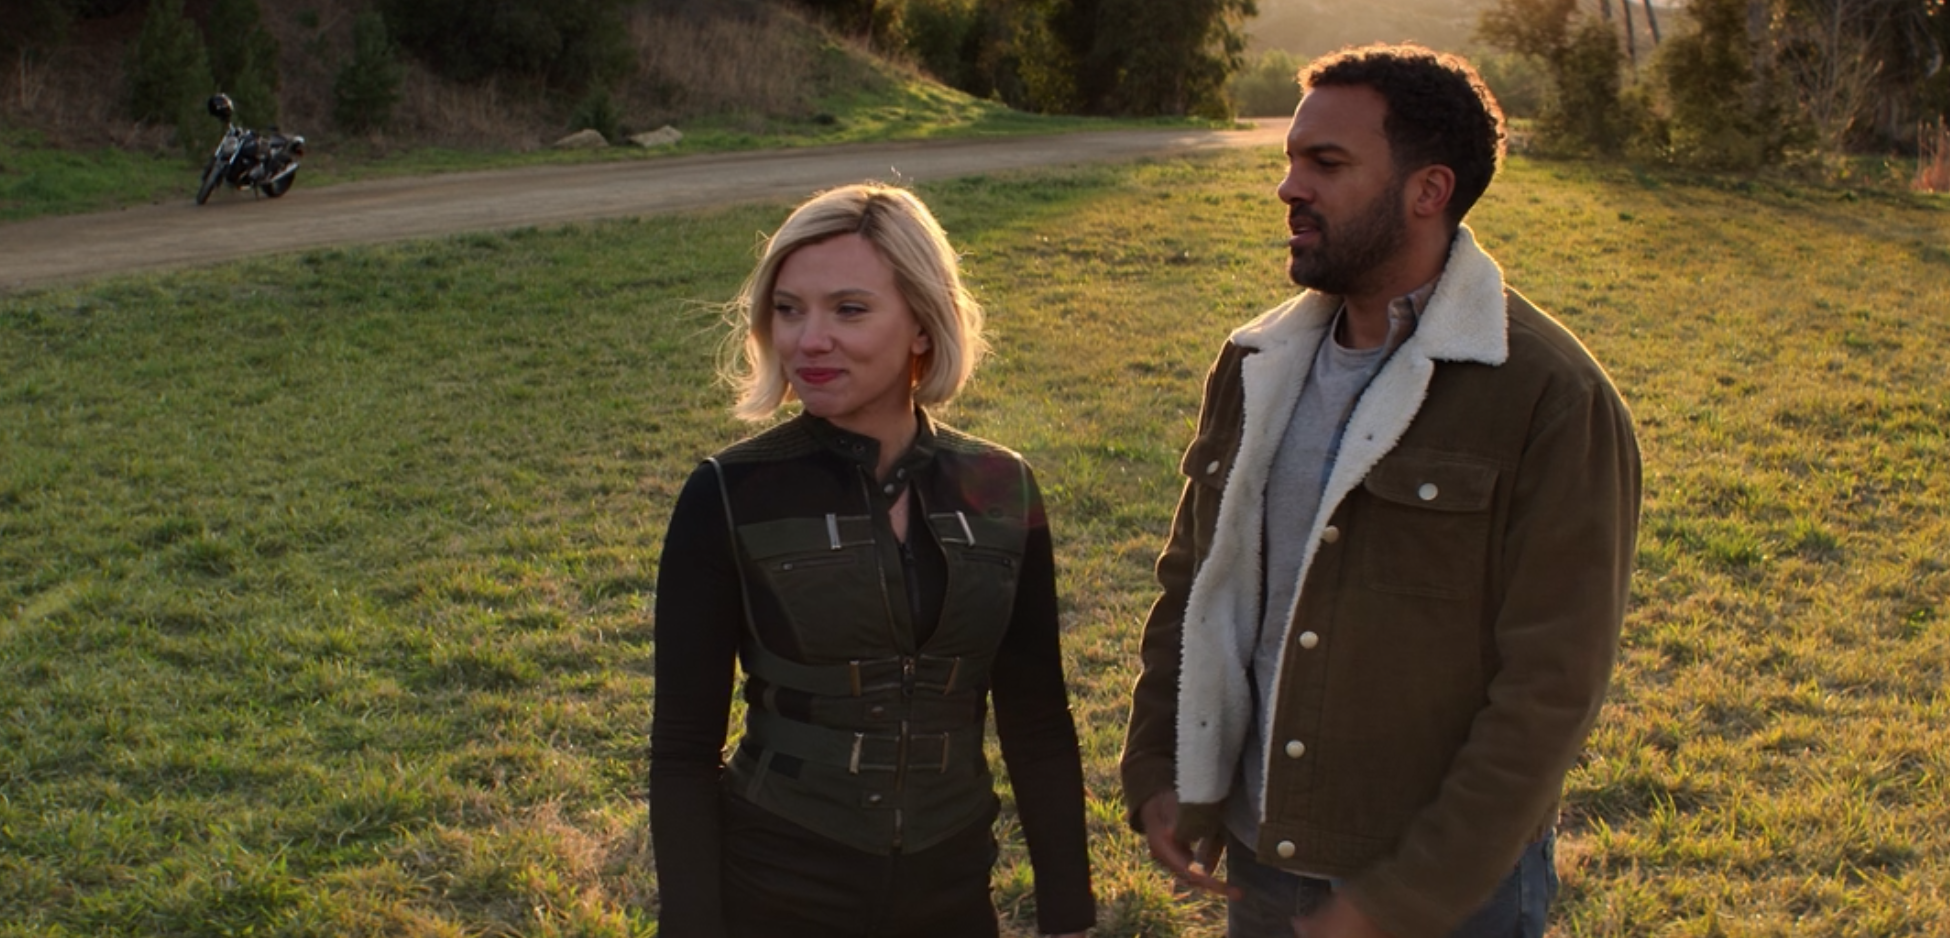 Natasha Romanoff and Rick Mason stand side by side in a sunlight field